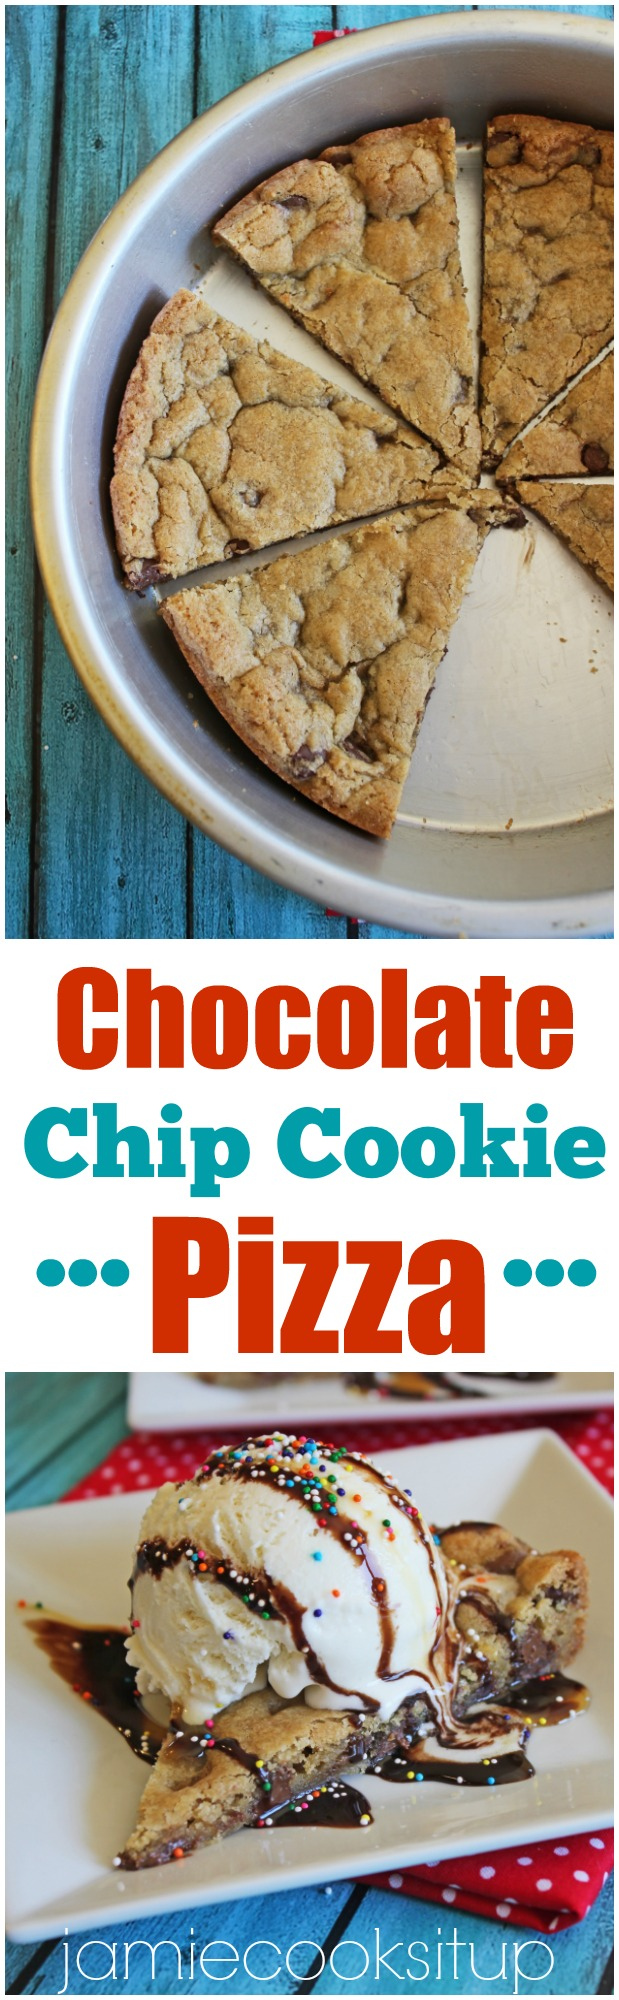 Chocolate Chip Cookie Pizza from Jamie Cooks It Up